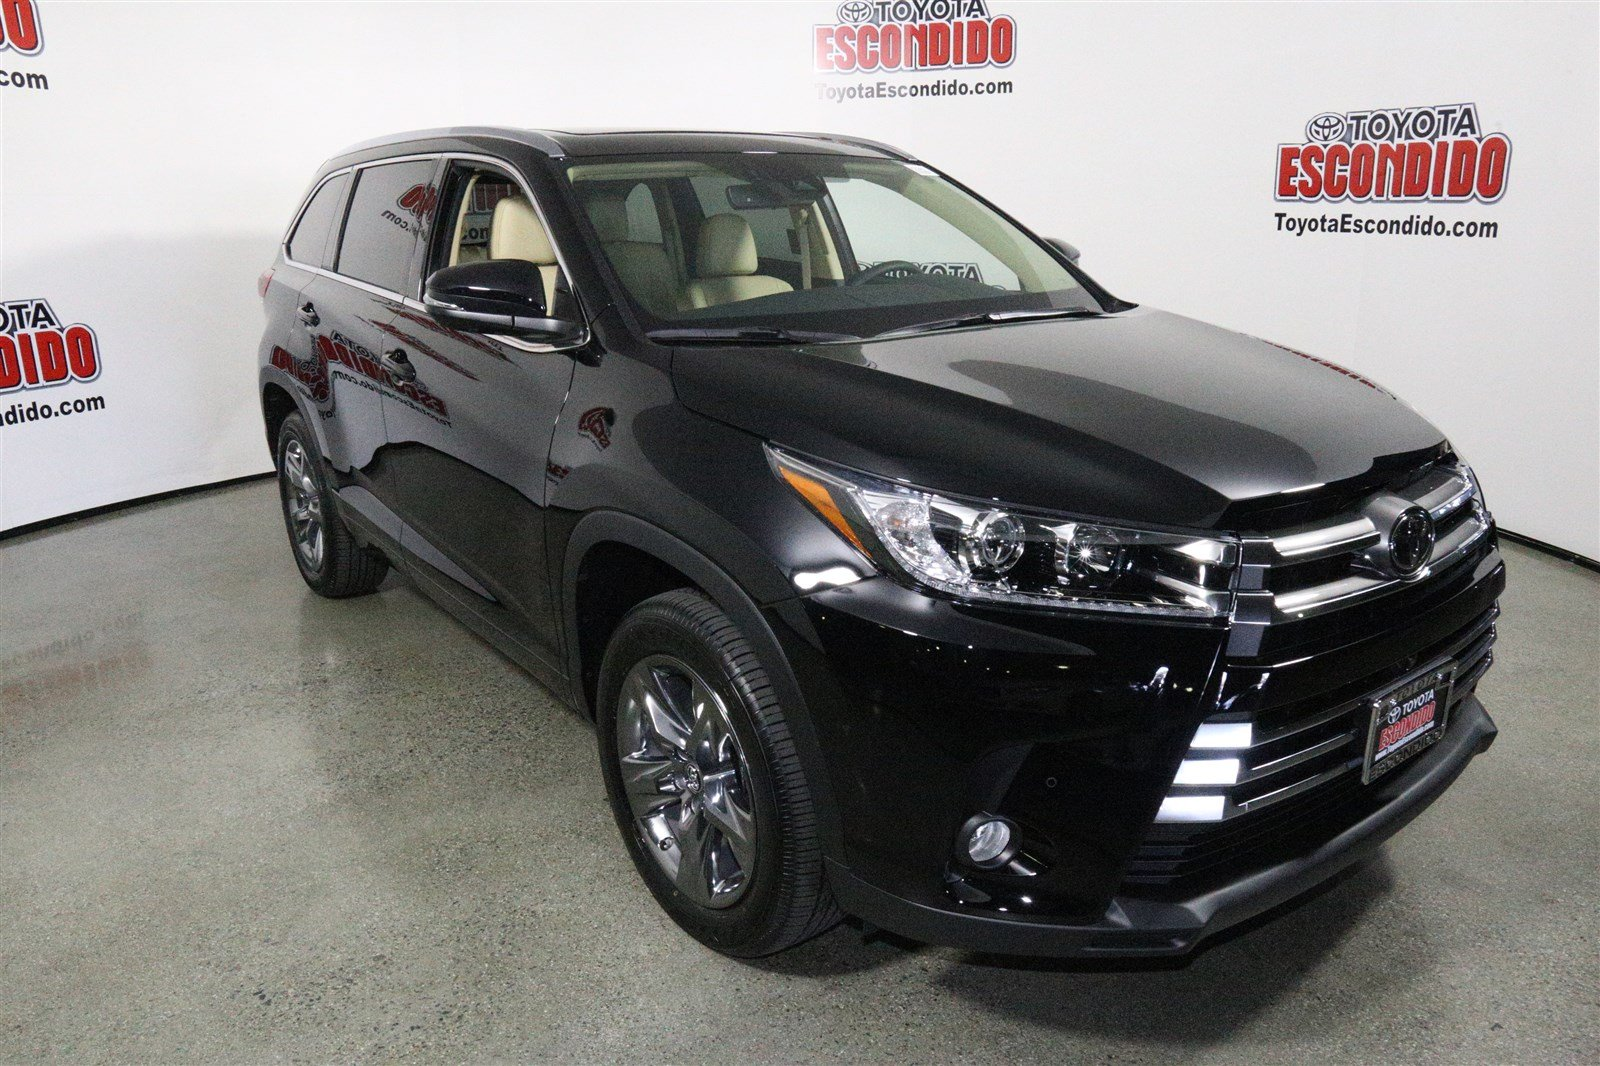 new 2017 toyota highlander limited platinum sport utility in escondido 1014591 toyota escondido. Black Bedroom Furniture Sets. Home Design Ideas